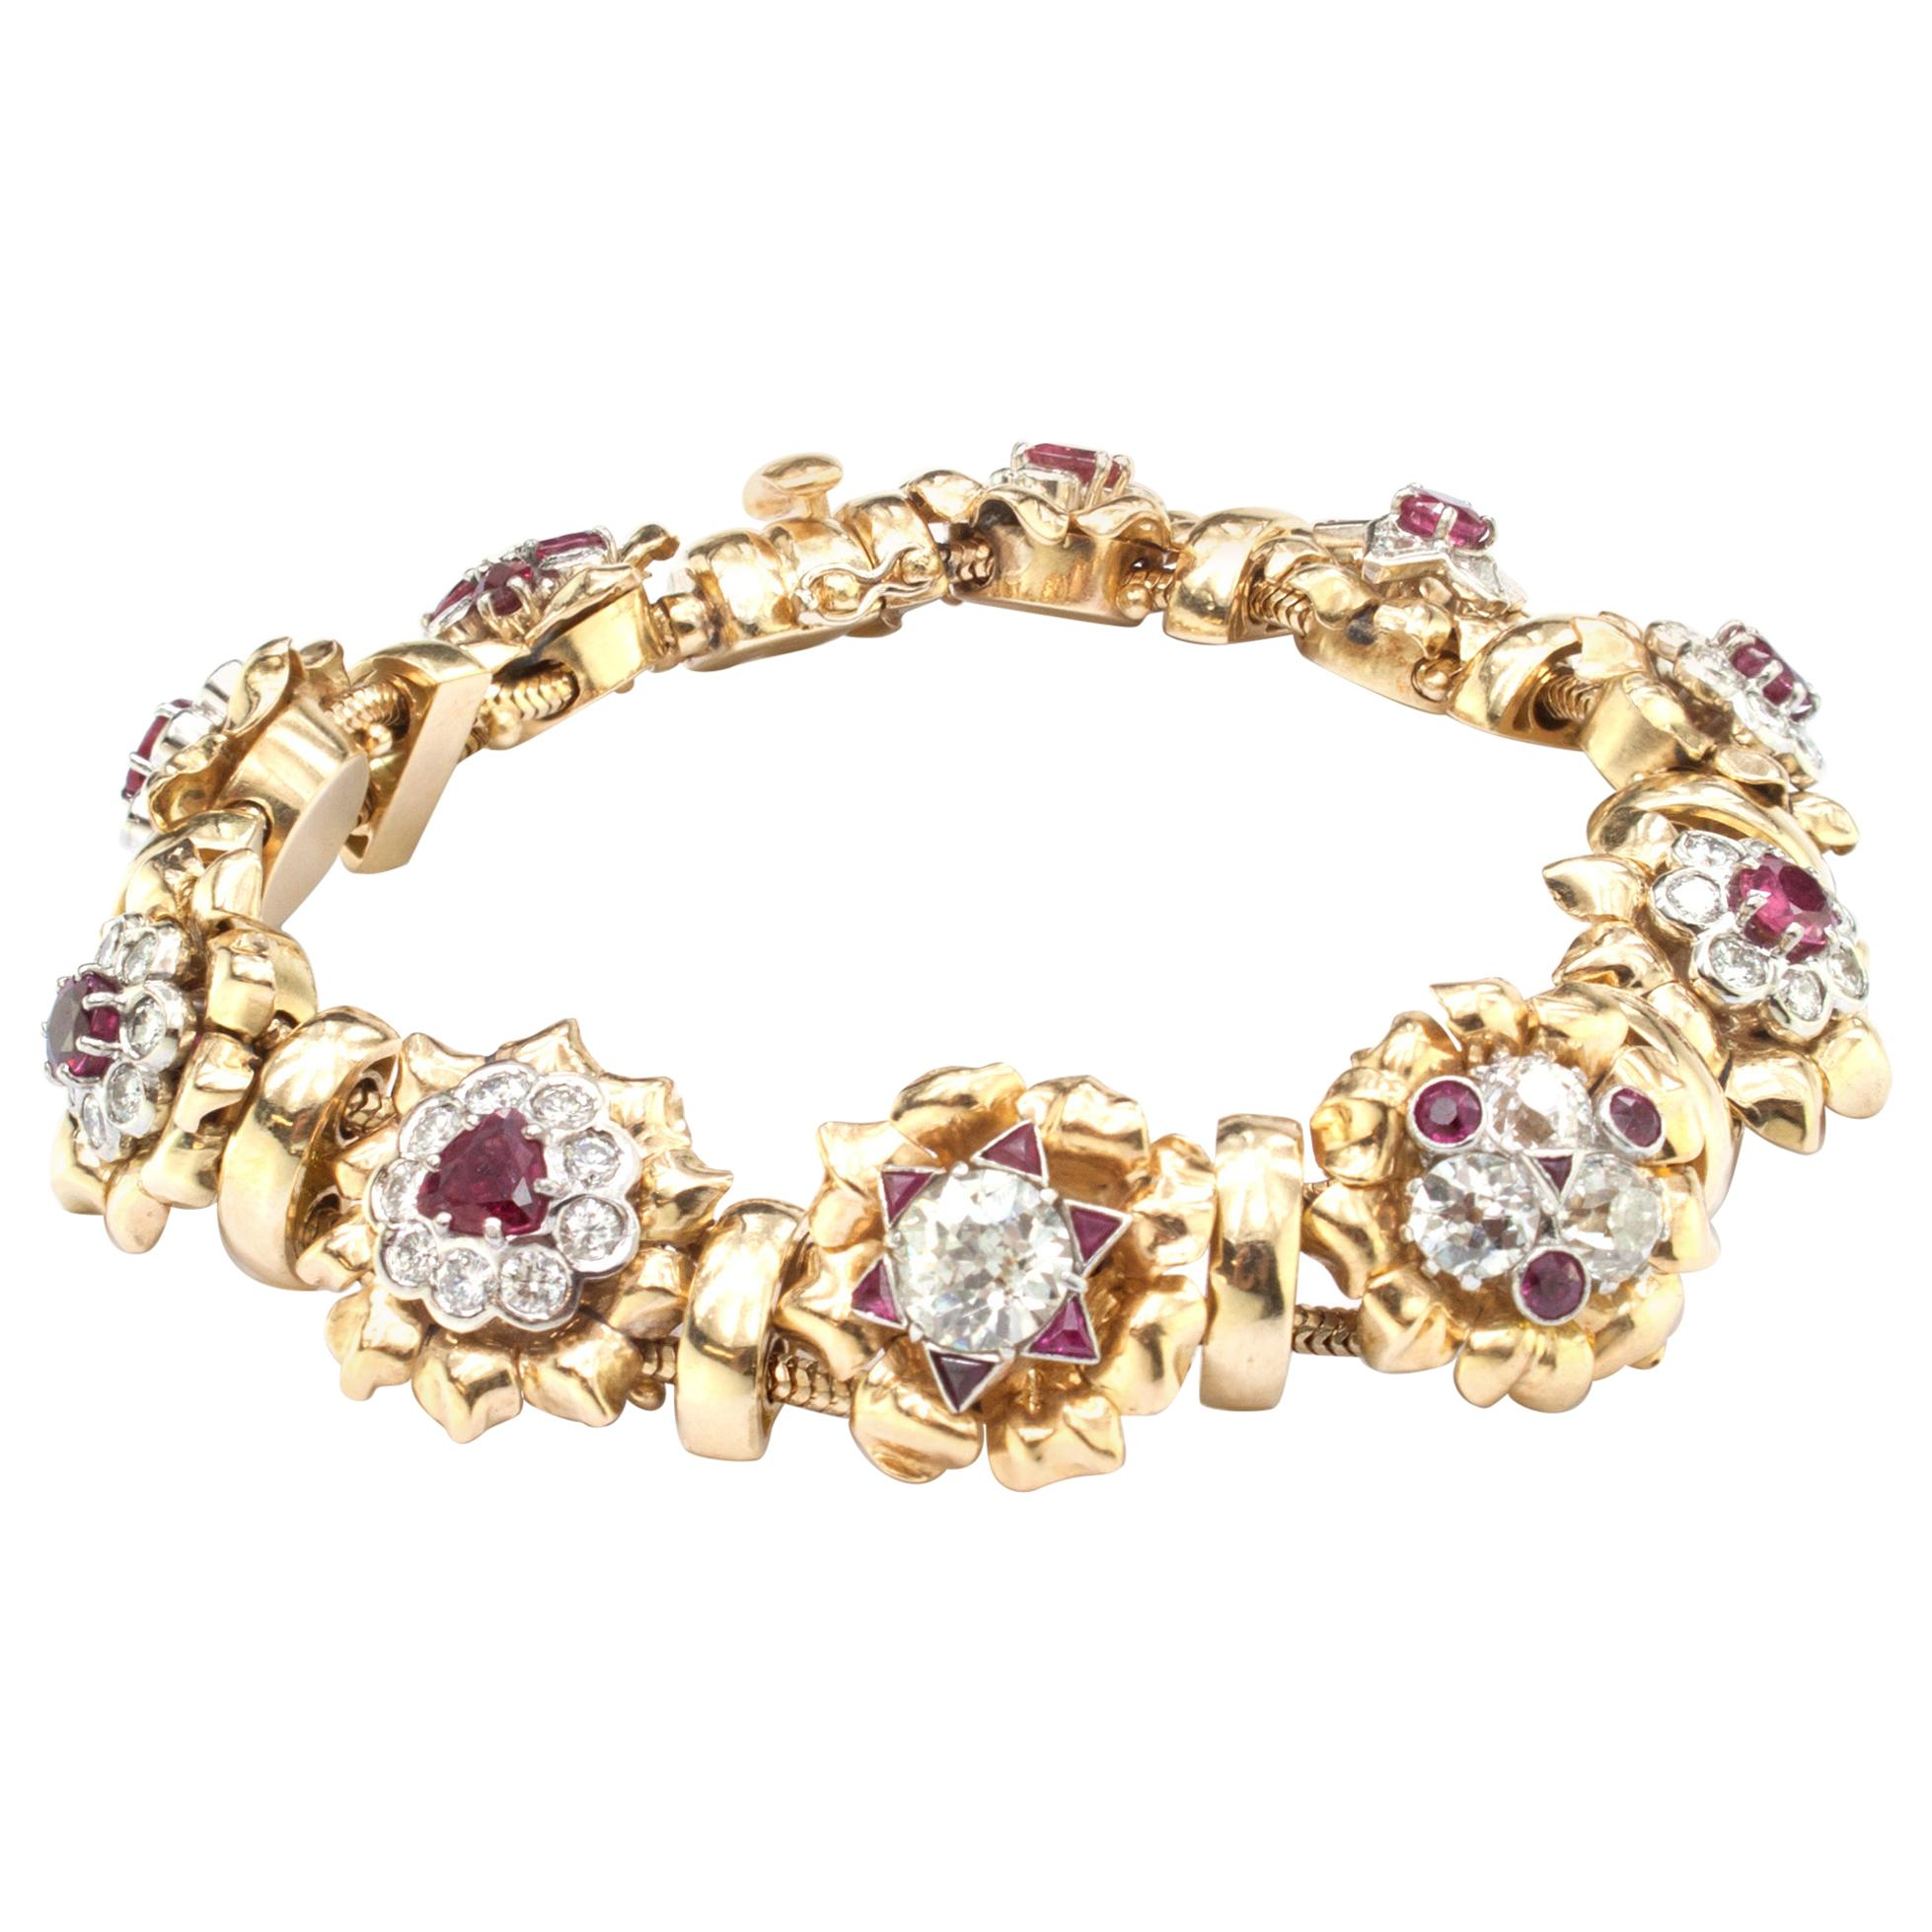 18kt Yellow Gold Ladies Bracelet with 7 Carat of Diamonds and 3 Carat of Rubies